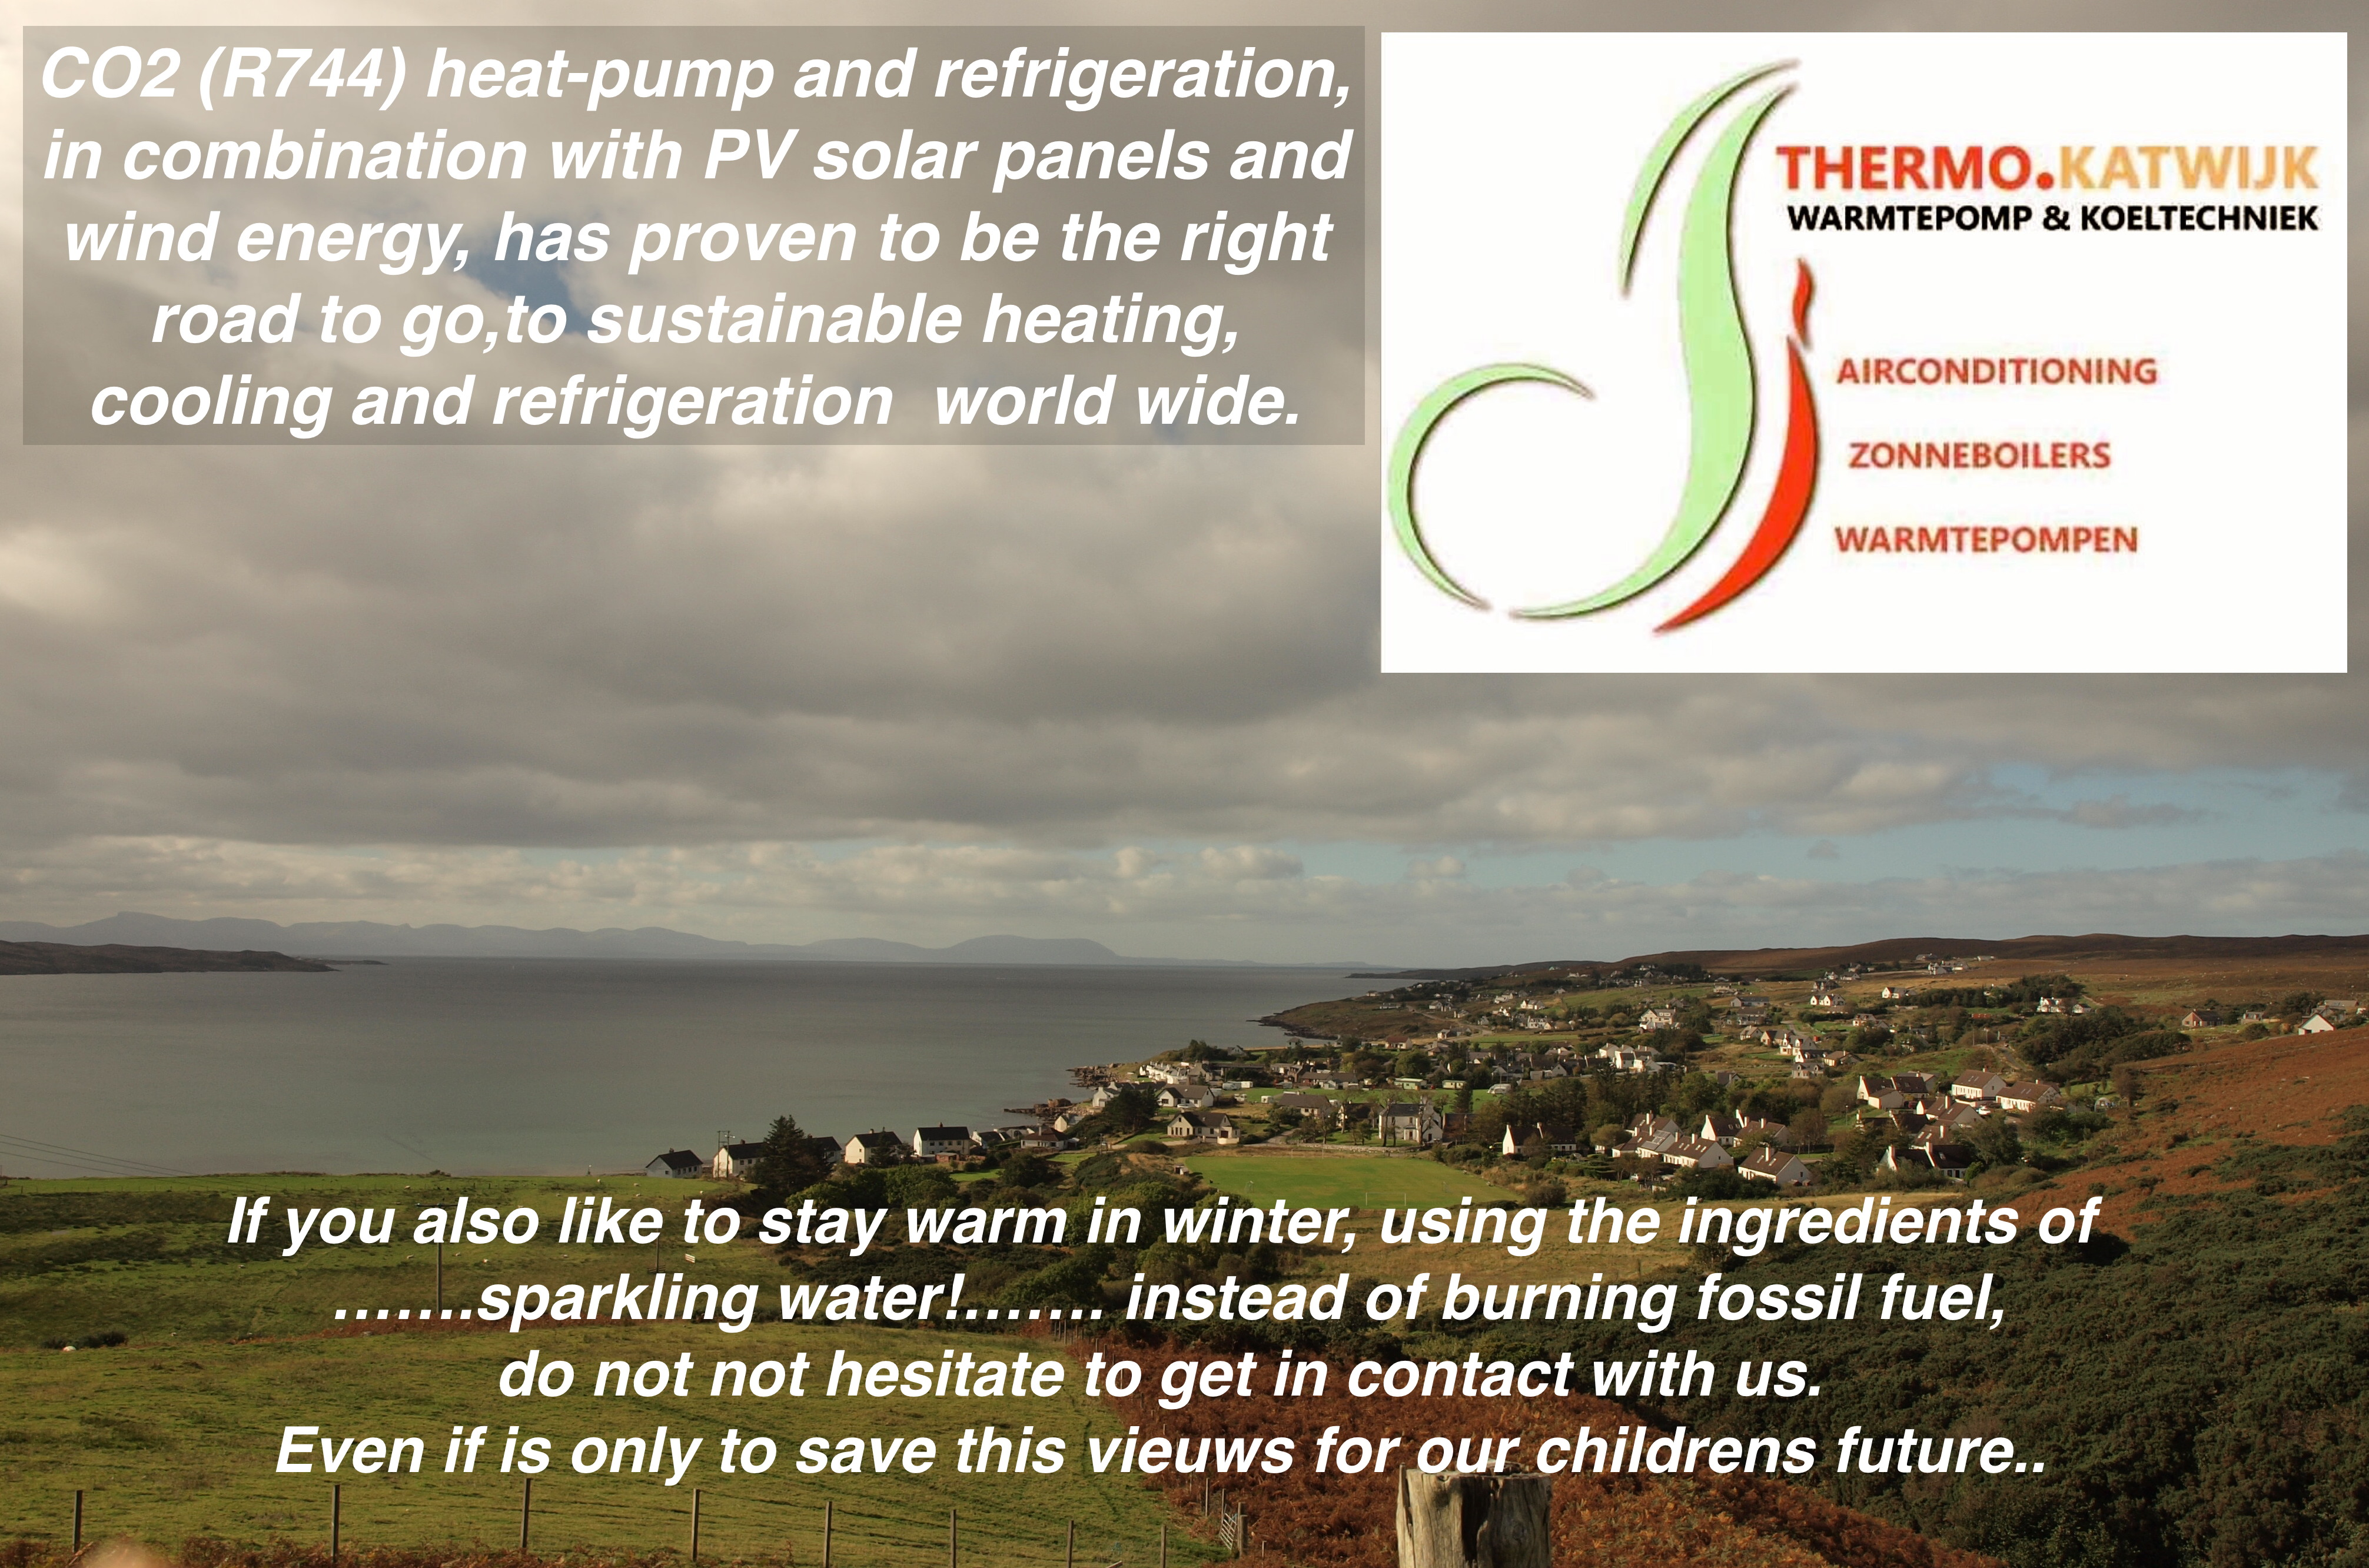 R744 Heatpump and refrigeration.